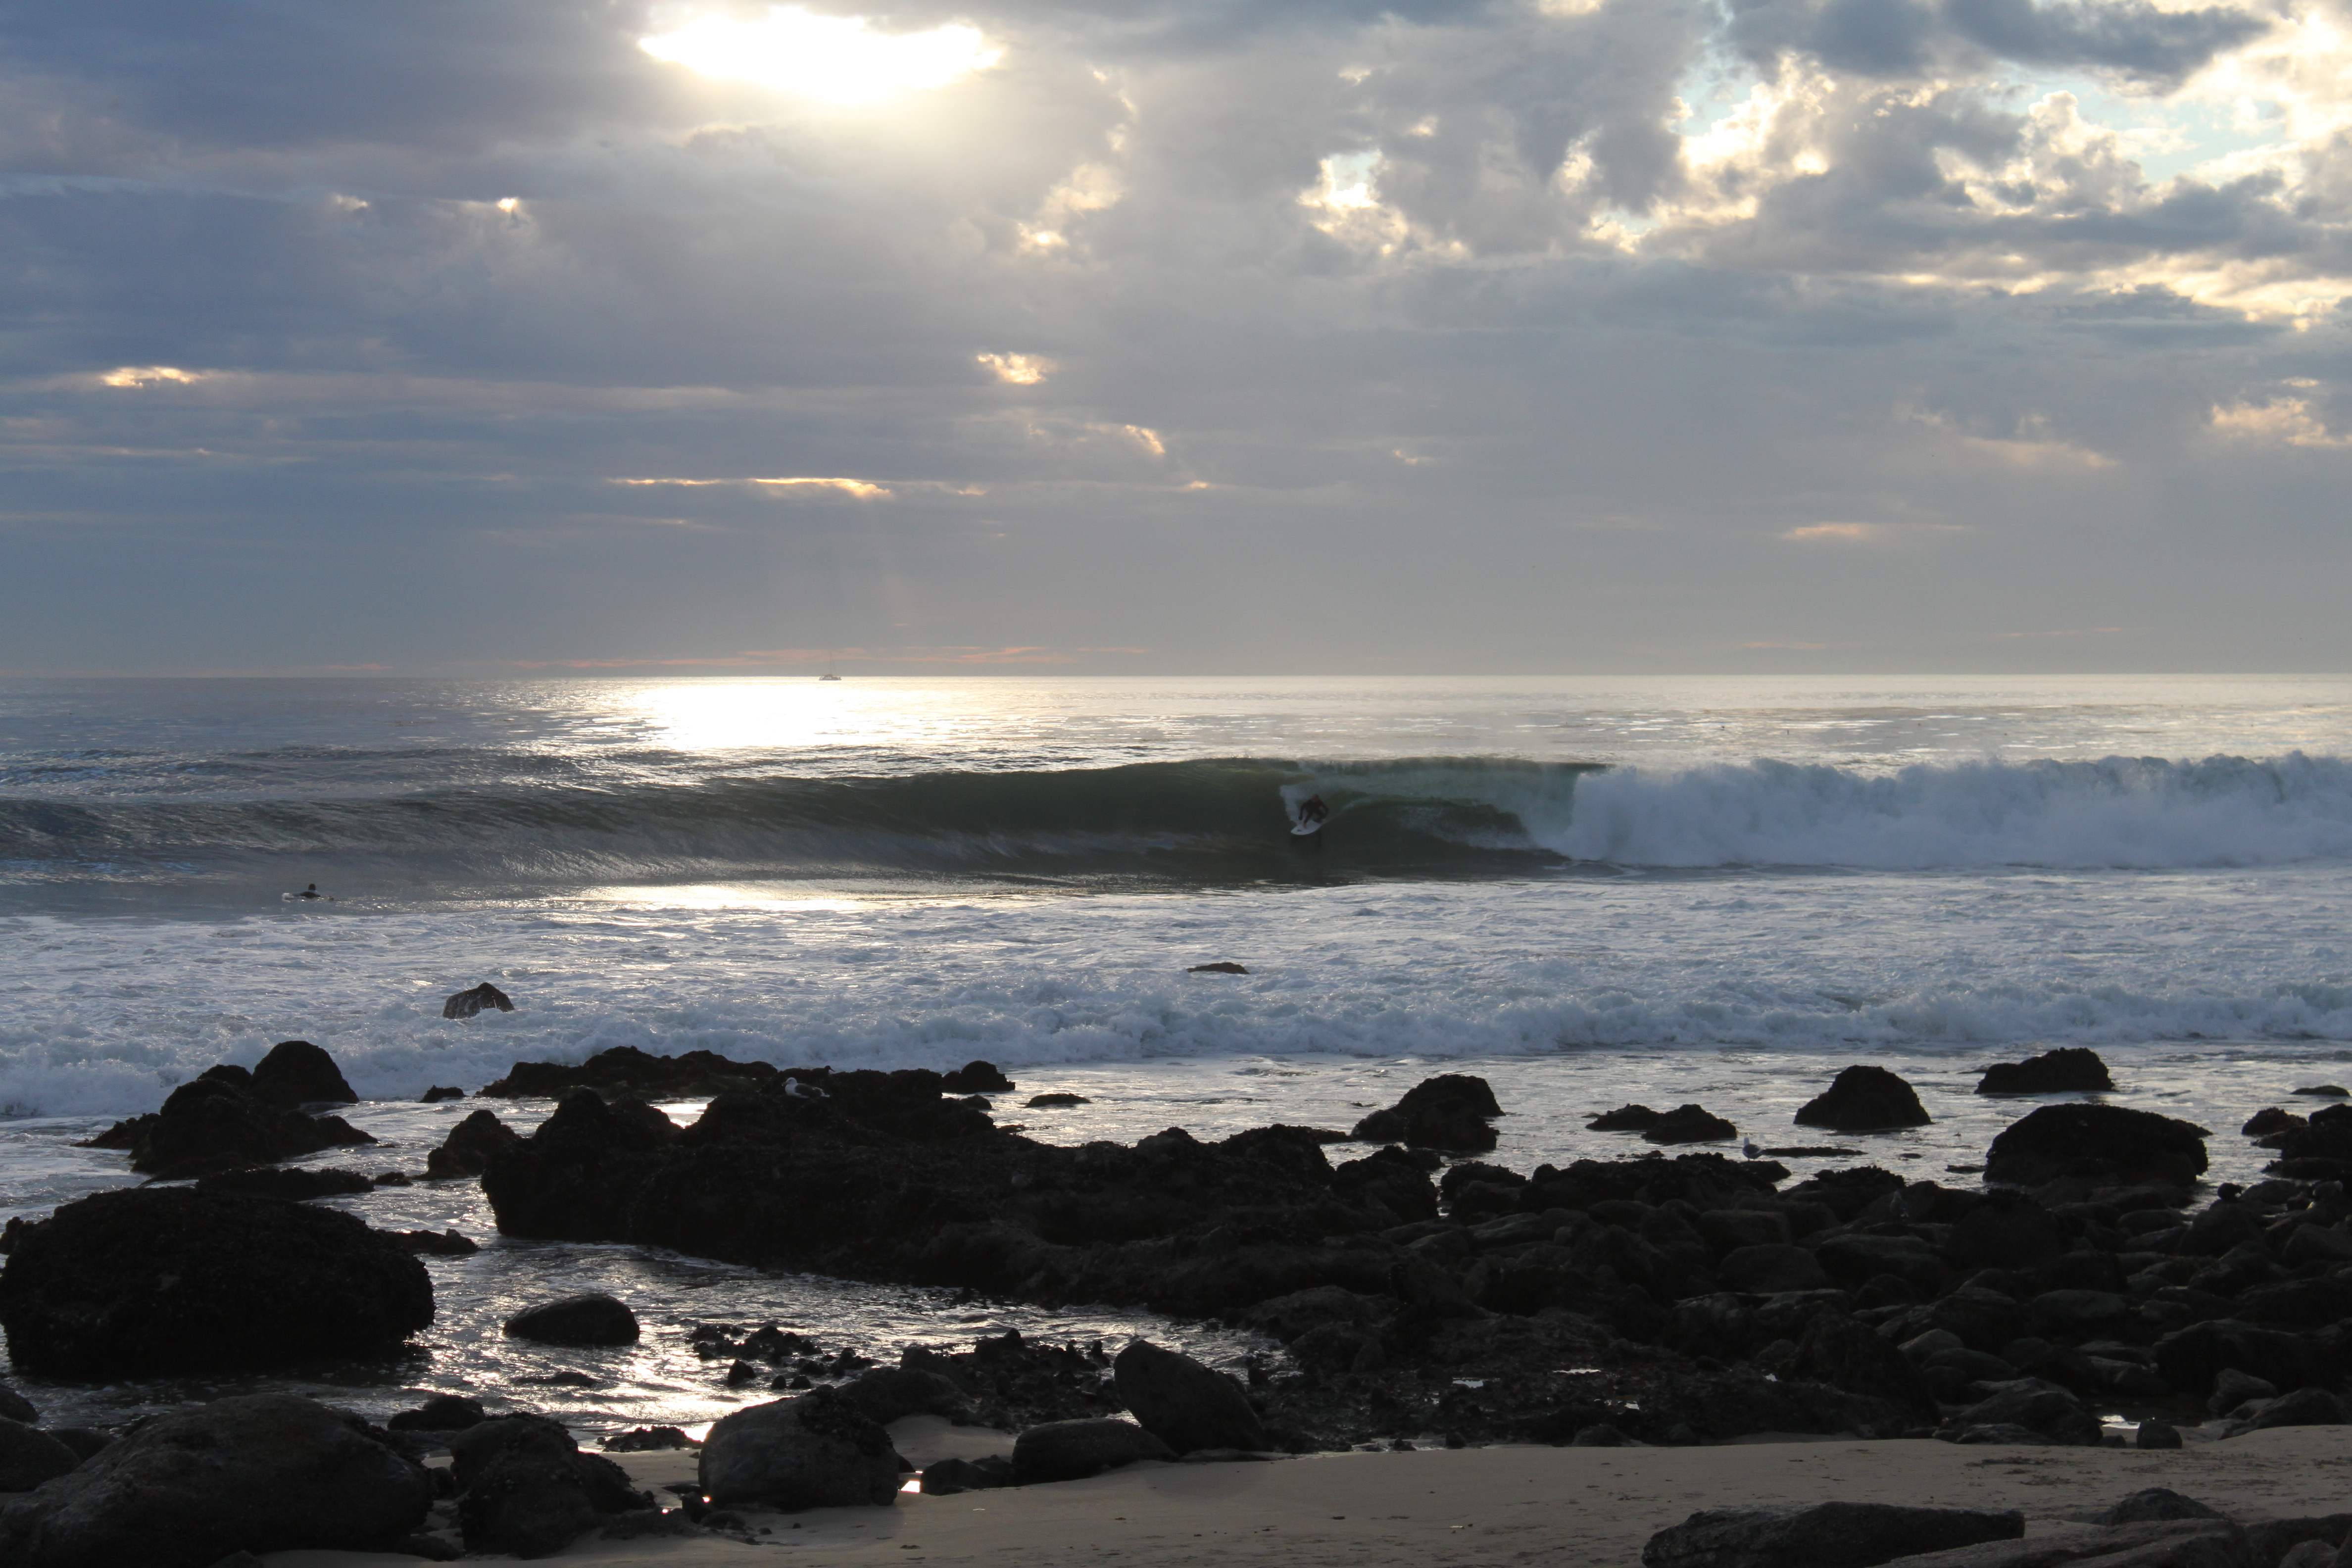 One of south Orange County's most popular spots for waves: Salt Creek.